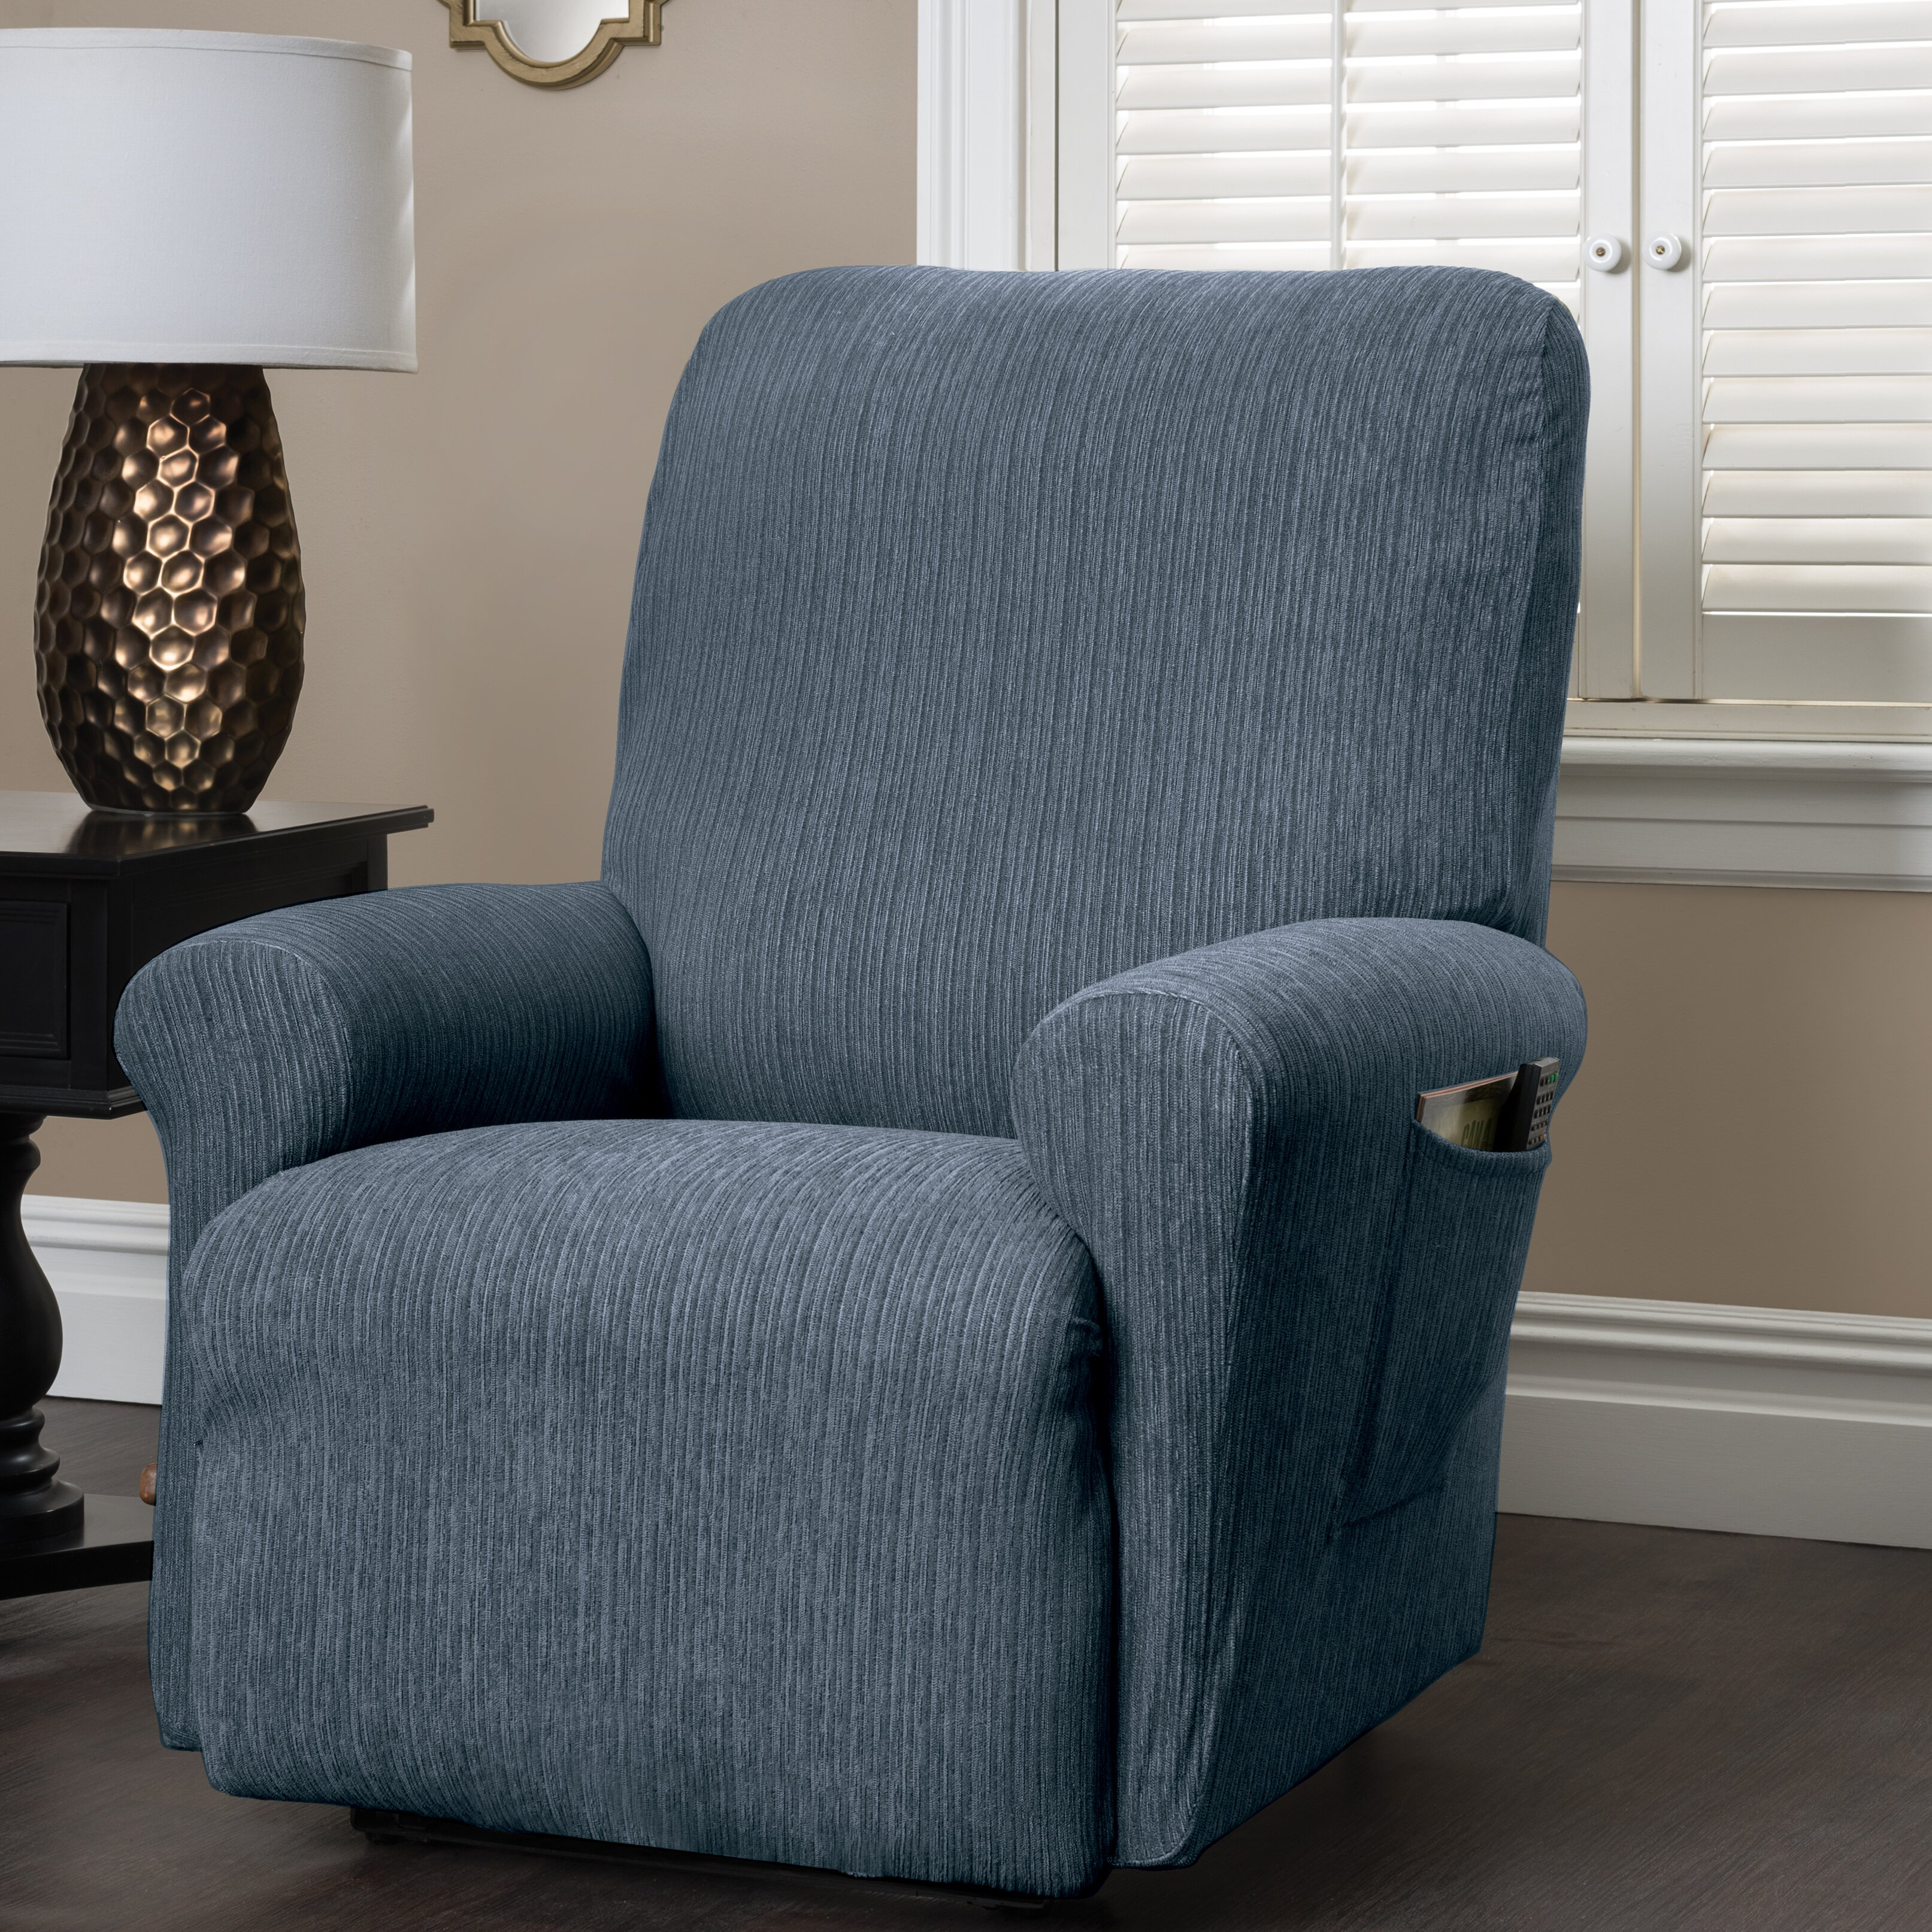 innovative textile solutions heather stripe stretch recliner slipcover reviews wayfair. Black Bedroom Furniture Sets. Home Design Ideas